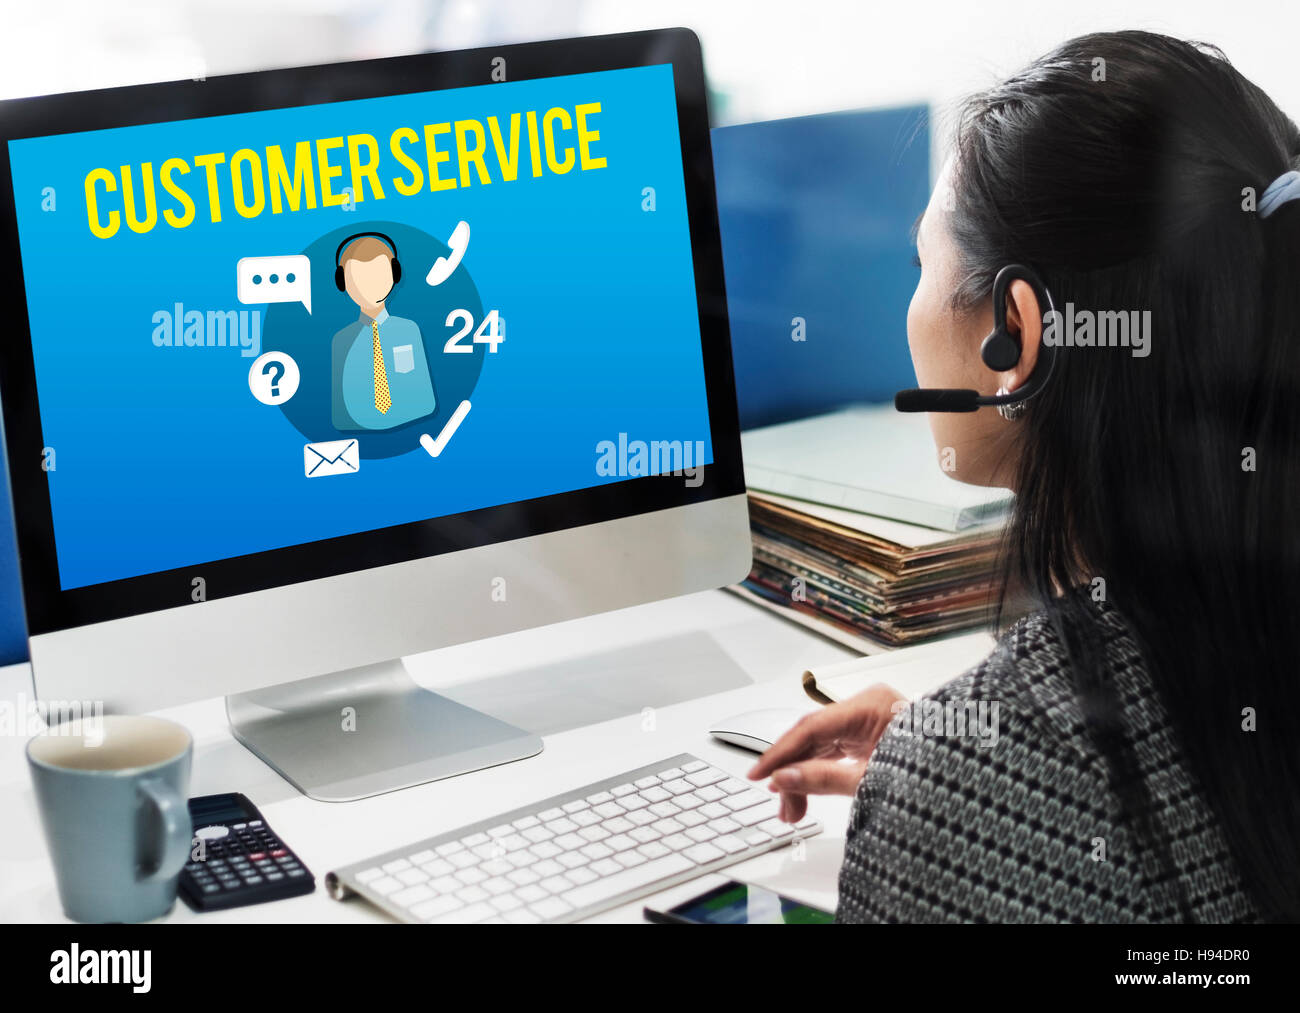 Customer Service Satisfaction Assistance Support Concept - Stock Image